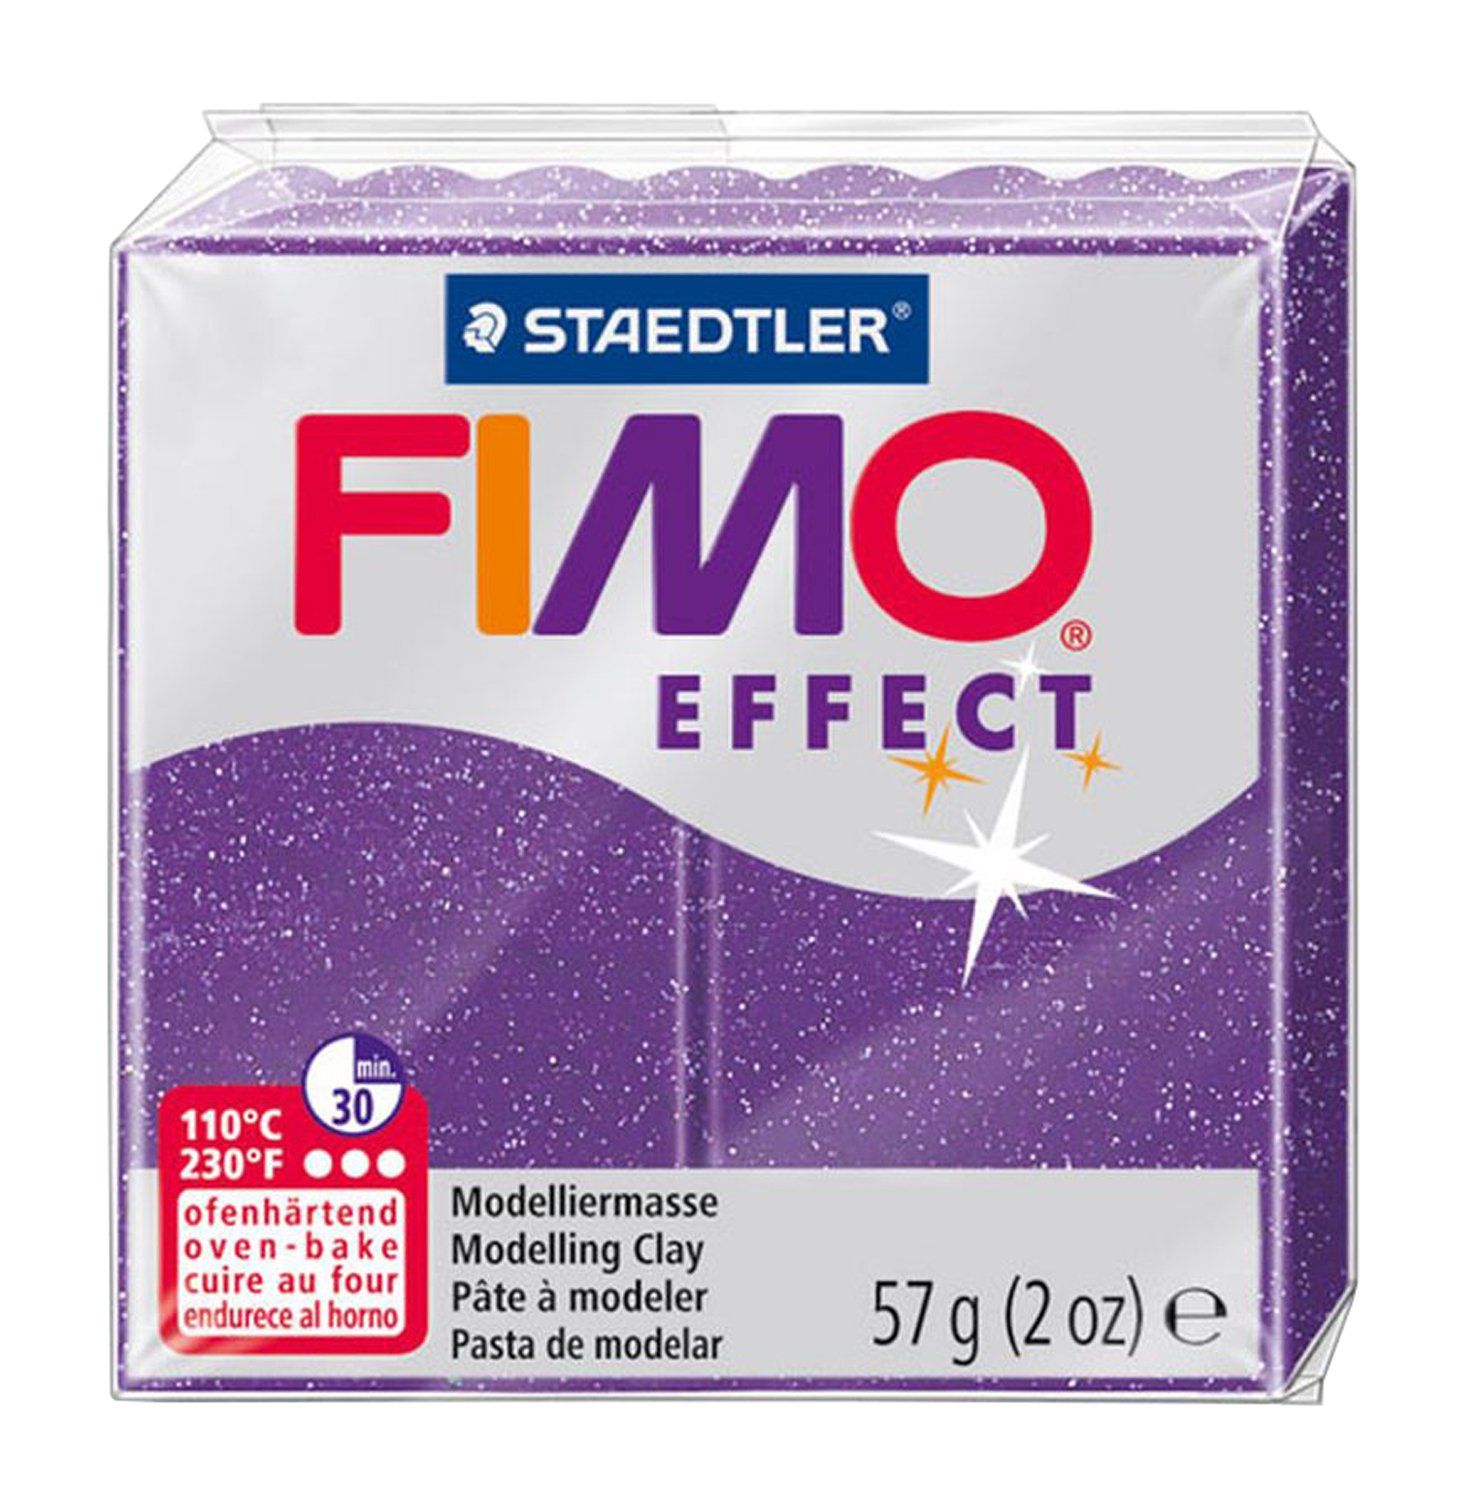 Staedtler FIMO Effects Polymer Clay Sculpting Glitter Blue 8020-302 -Oven Bake Clay for Jewelry